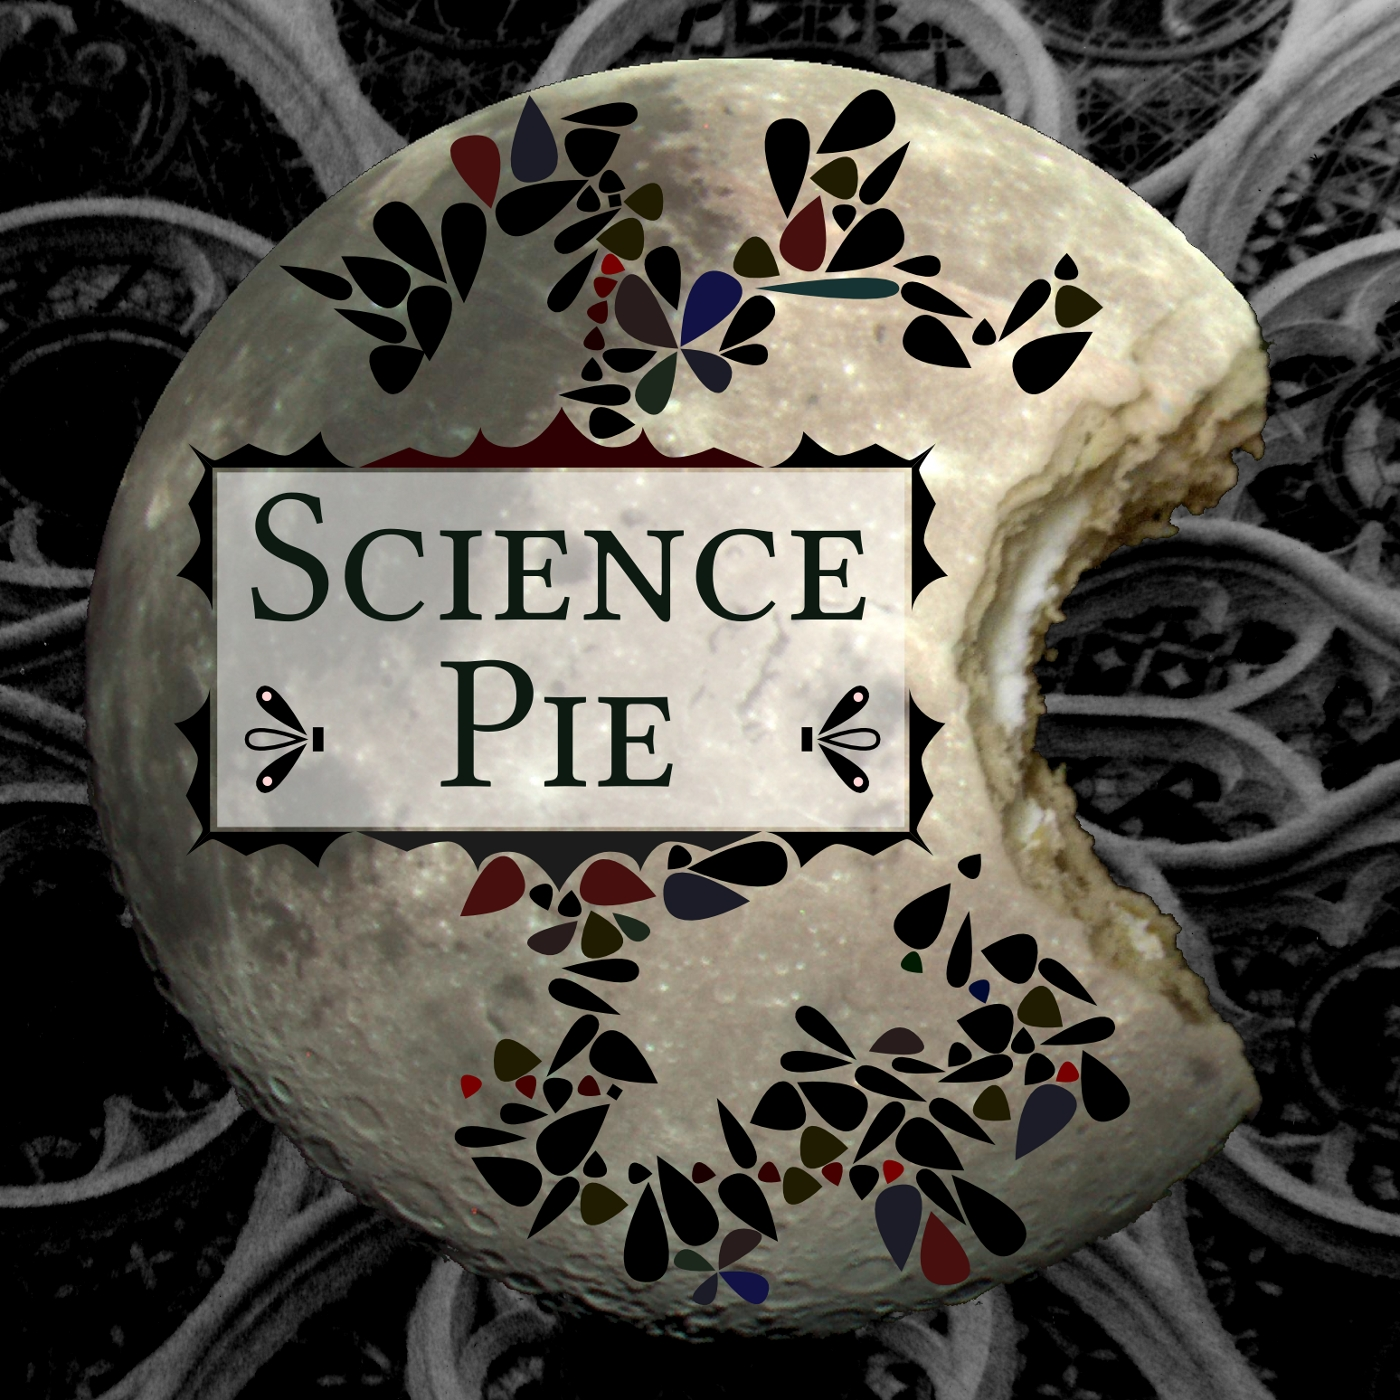 Science Pie (English) - Science Pie